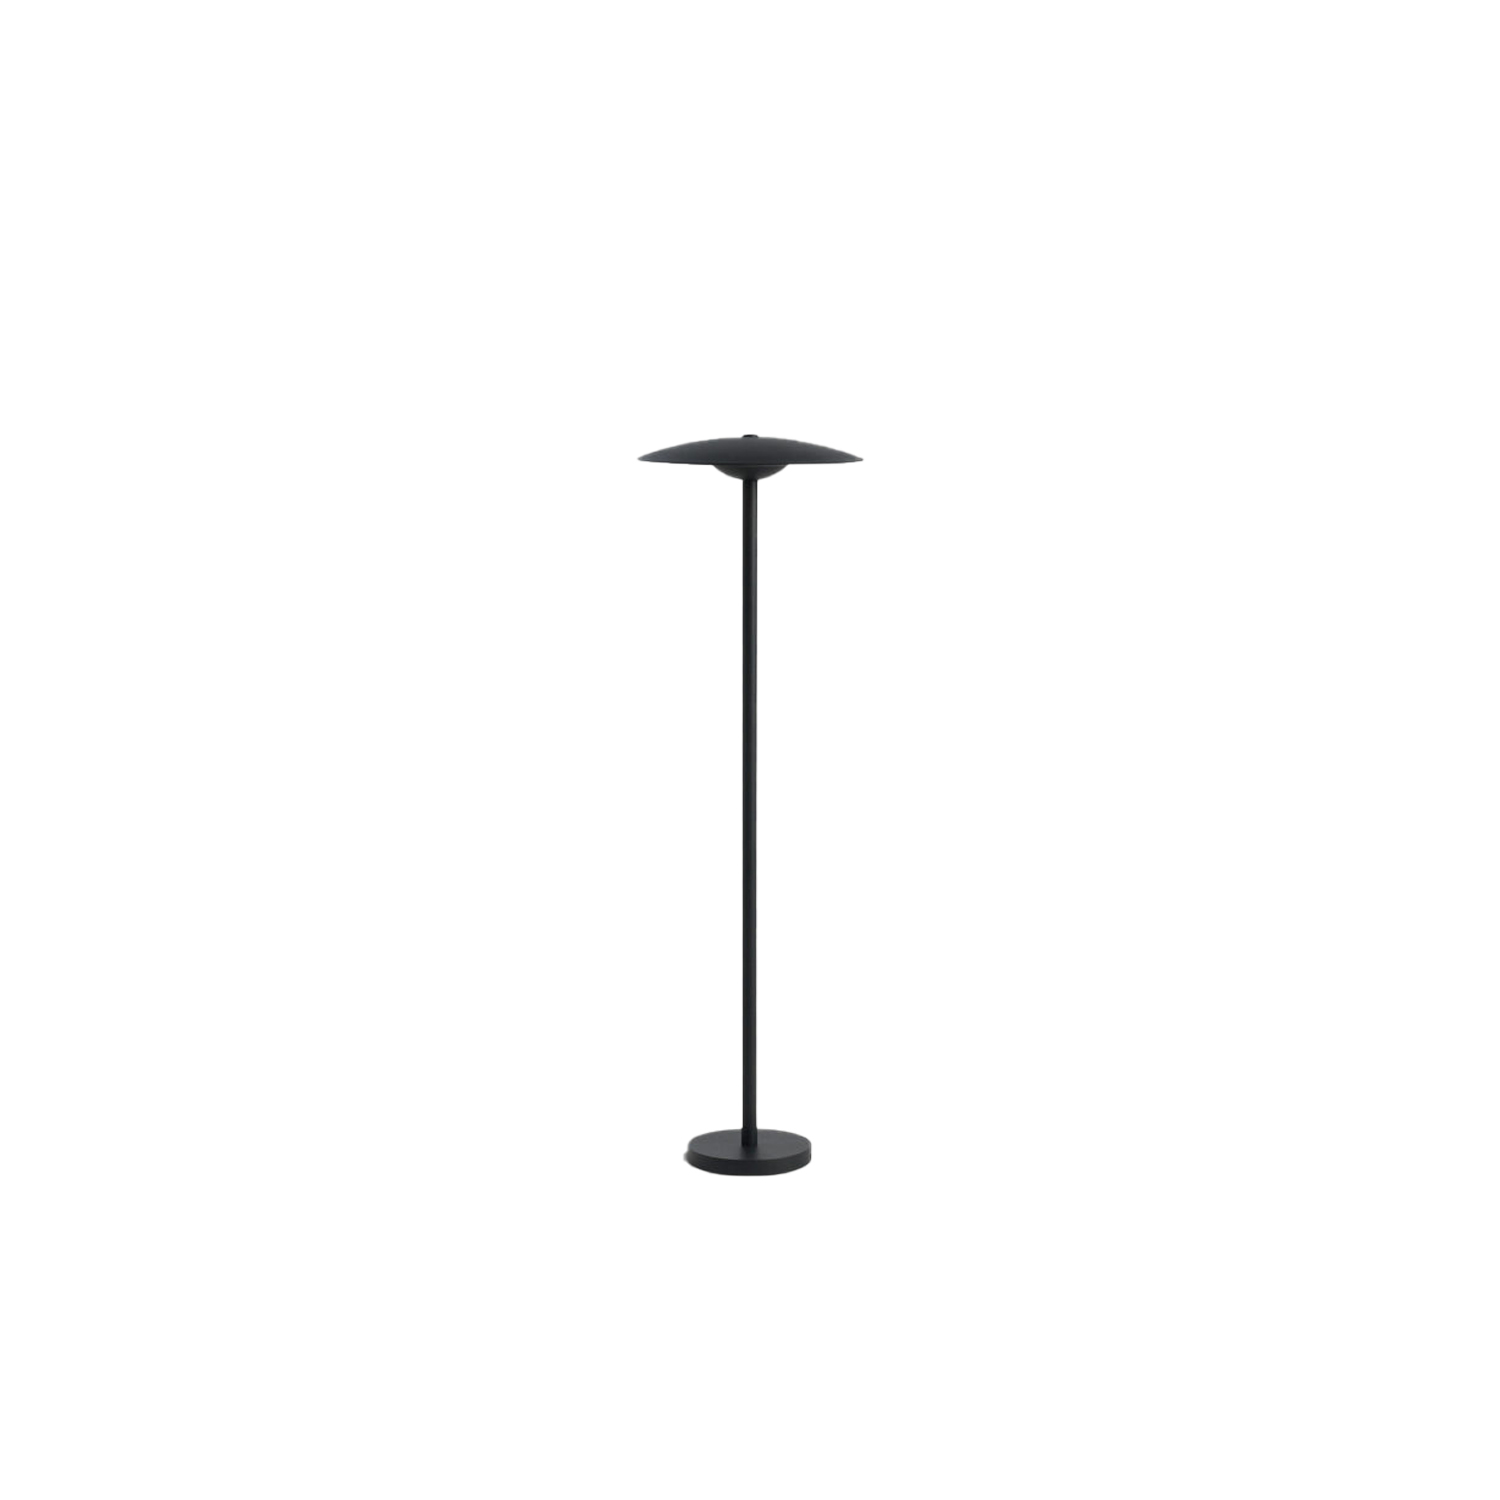 Ginger B 20/86 Outdoor Floor Lamp - The Ginger collection is moving outdoors, with wall sconces that can be installed individually or in a cluster, a new 15 cm sconce —perfect for passageways and small outdoor areas—, a lamppost and small floor lamps.  This year, the collection features new bollard lamps, raised by means of a post that can be buried in dirt or gravel, perfect for illuminating pathways, gardens, terraces, and walls, and blending nicely with vegetation. | Matter of Stuff